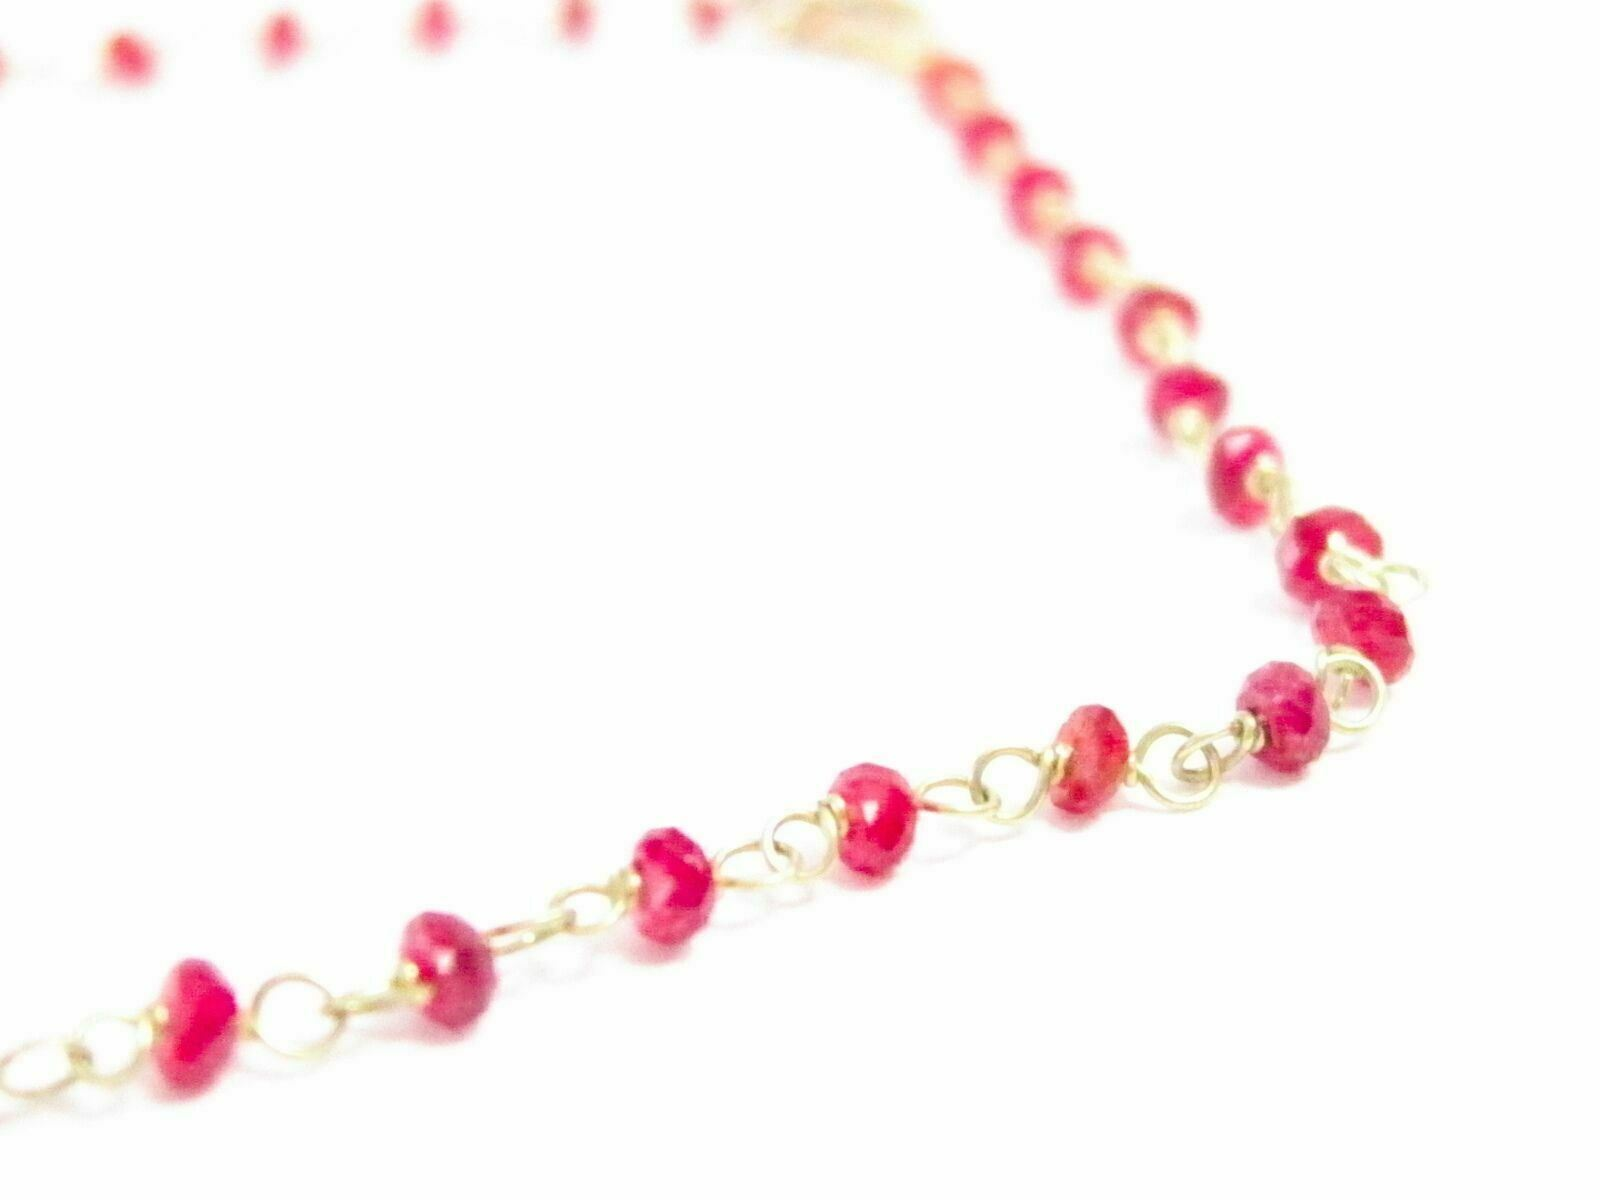 Fine Red Ruby Bead & Pearl Strand Necklace 14k Yellow Gold 18 Inches 30 Carats